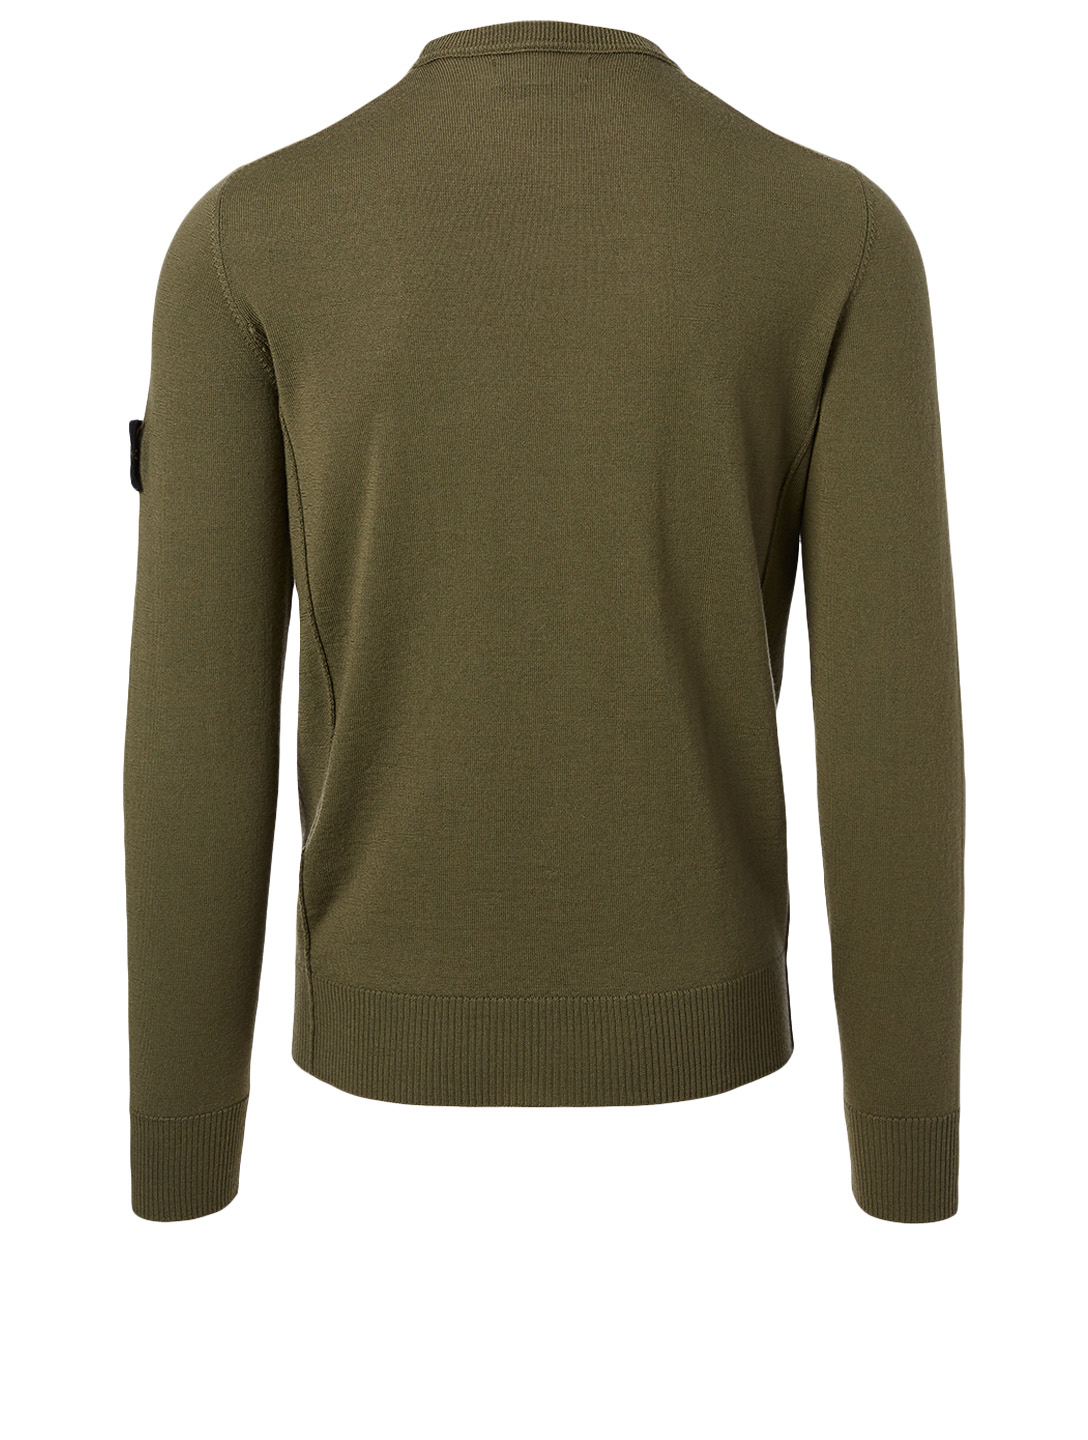 STONE ISLAND Wool Sweater Men's Green